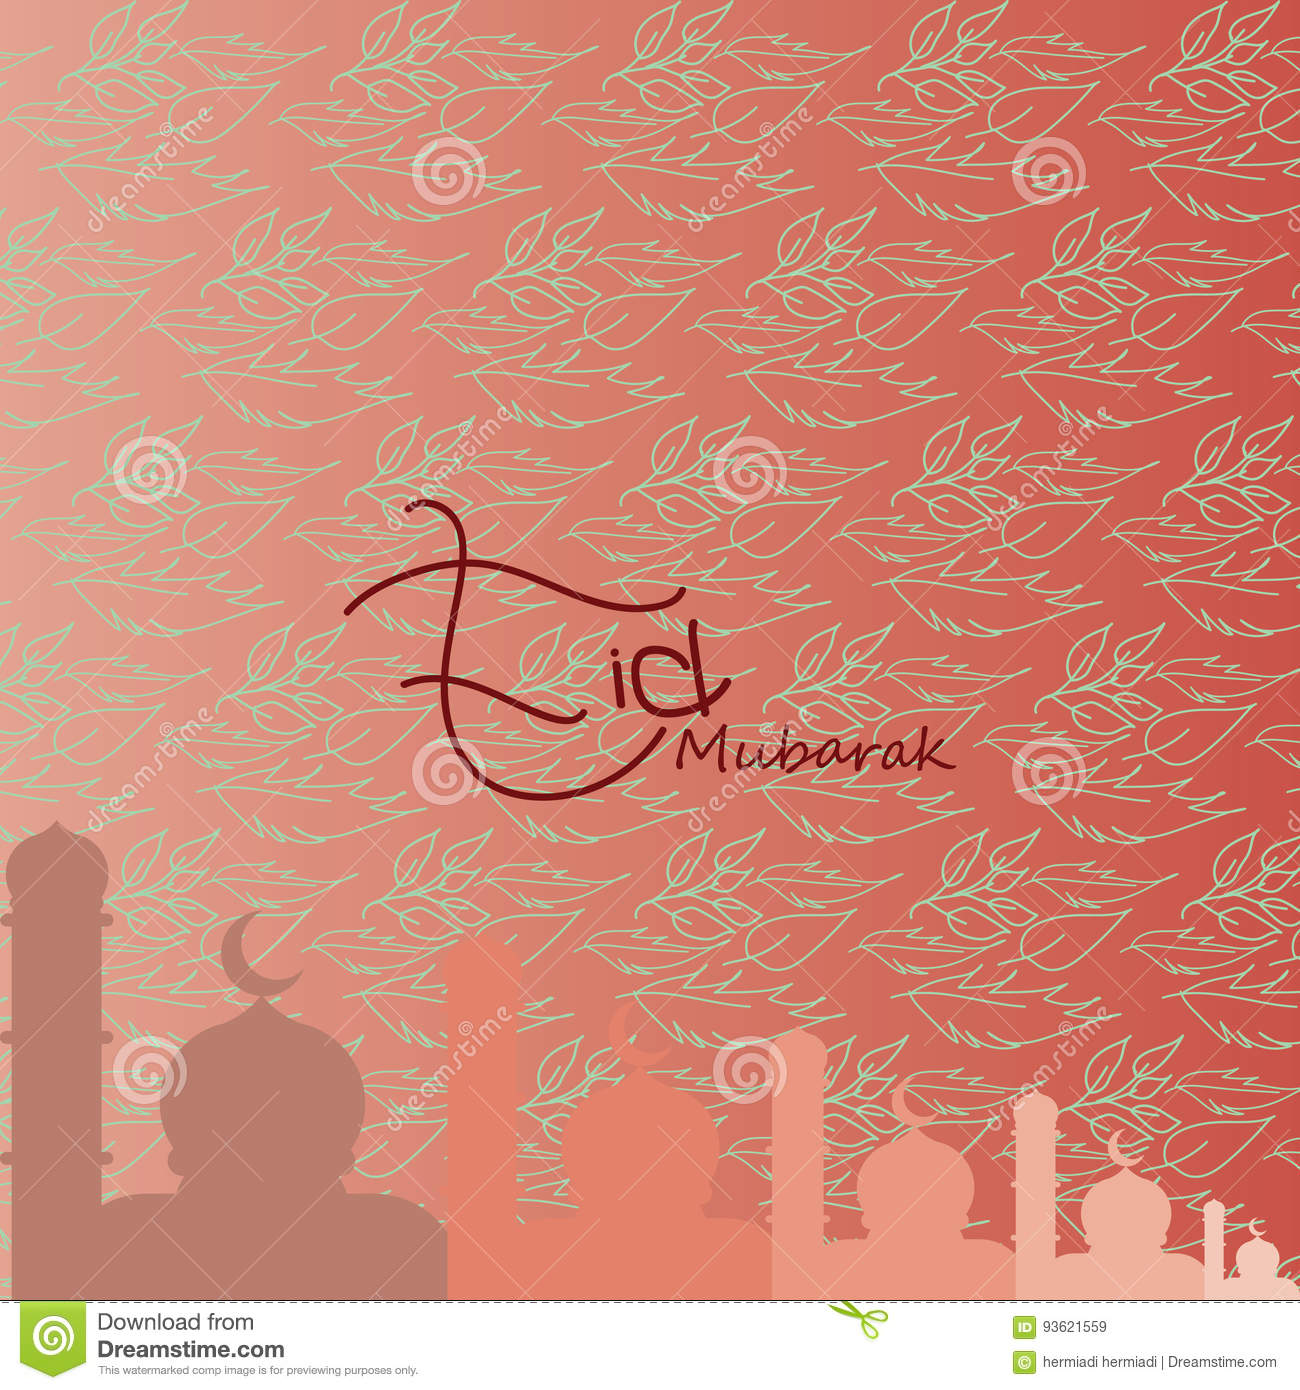 Eid Mubarak Greetings Background For Ramadan Kareem Eid Al Fitr